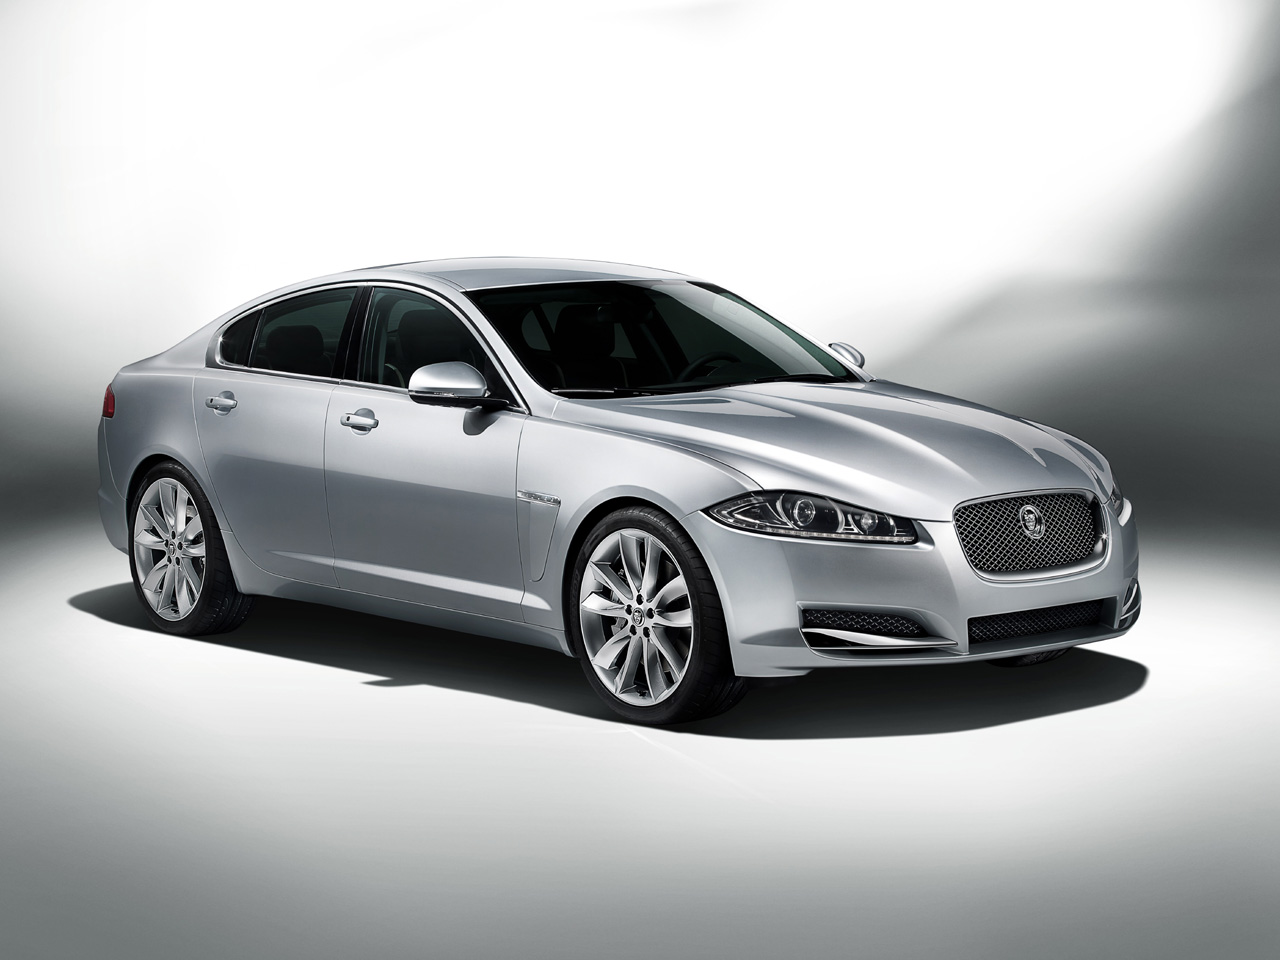 Vegas Luxury Car Rental >> 99 WALLPAPERS: 2012 Jaguar XF